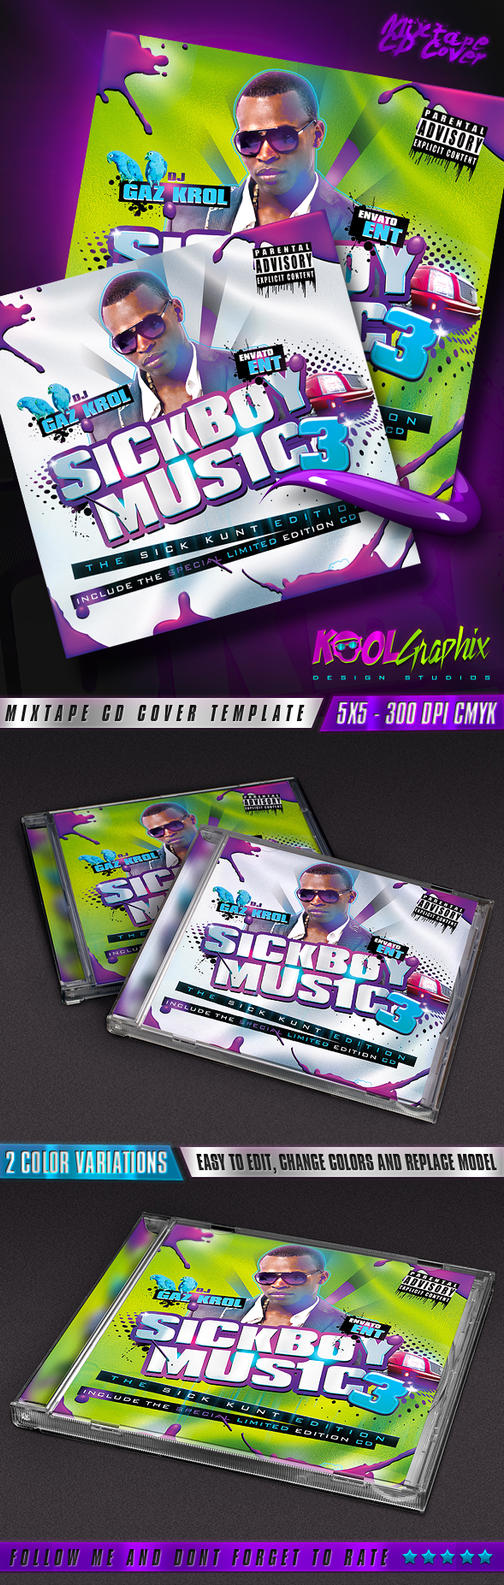 SickBoy Music - Mixtape CD Cover by KoolGfx